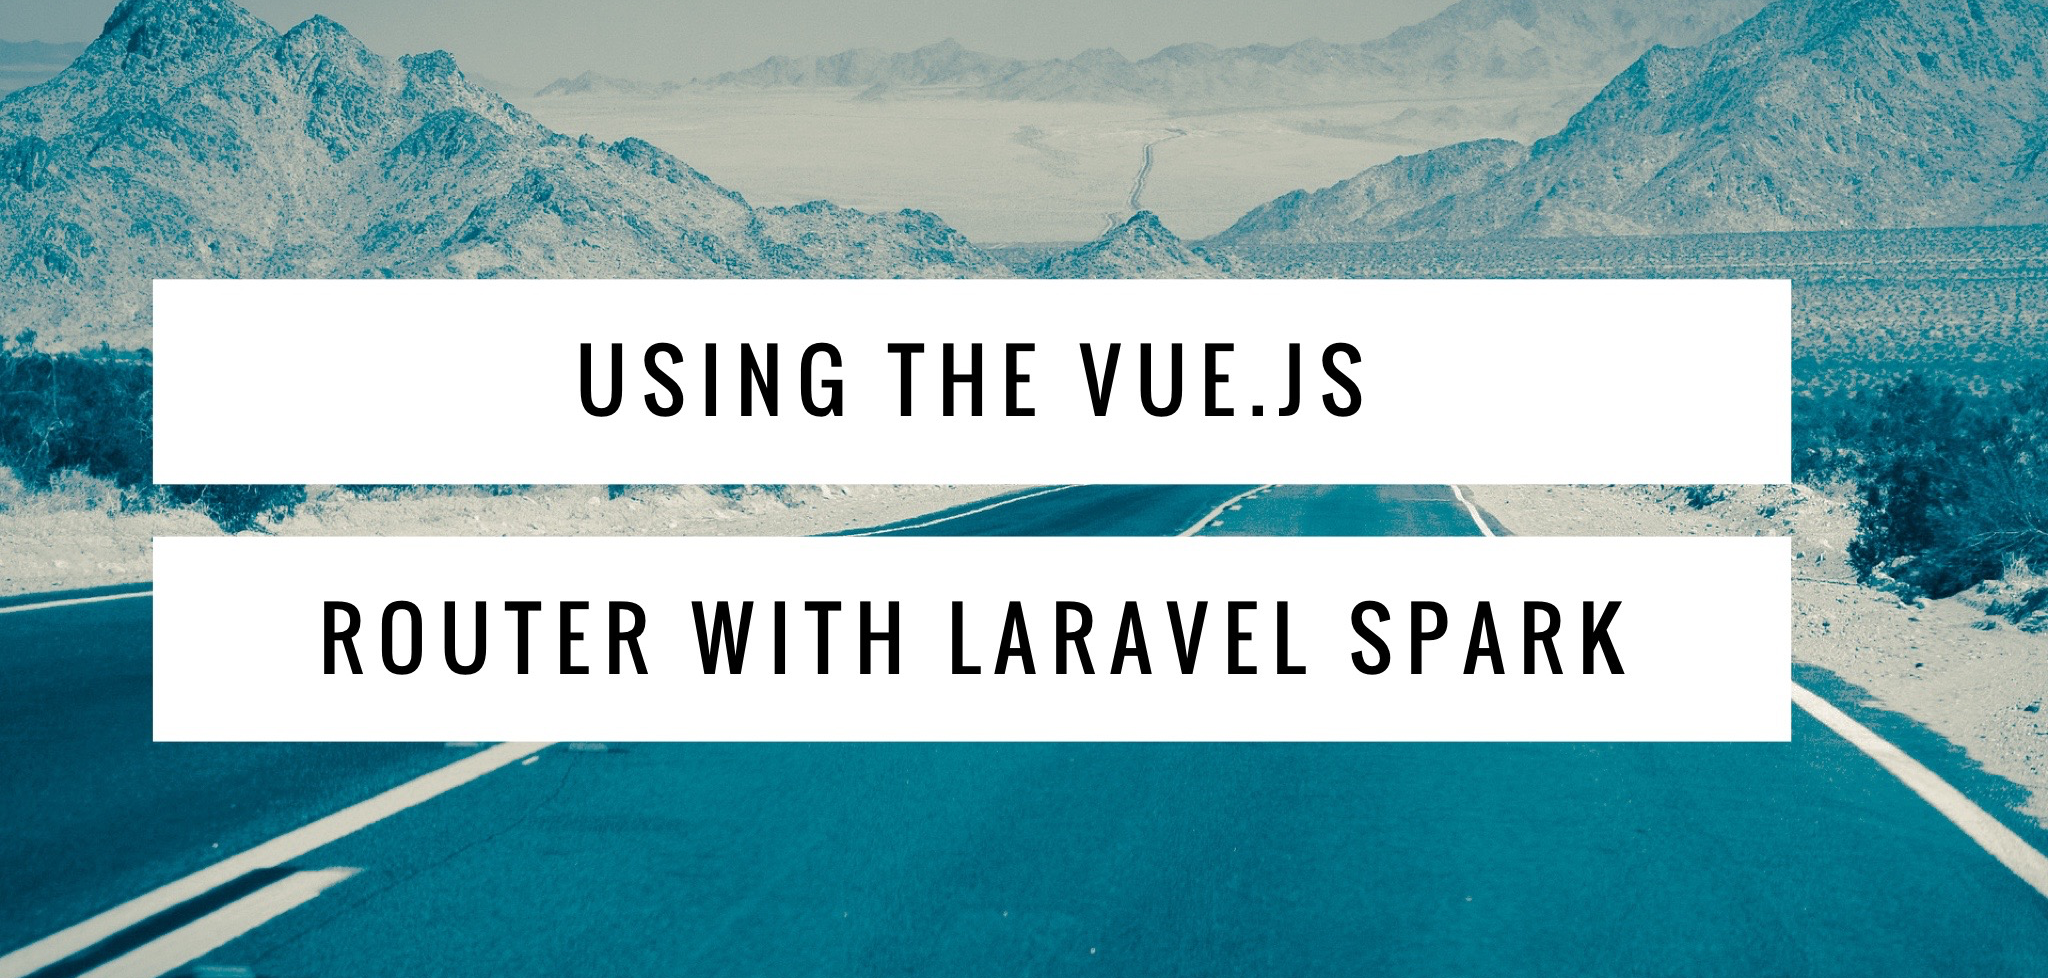 Using the Vue js router with Laravel Spark - dotdev